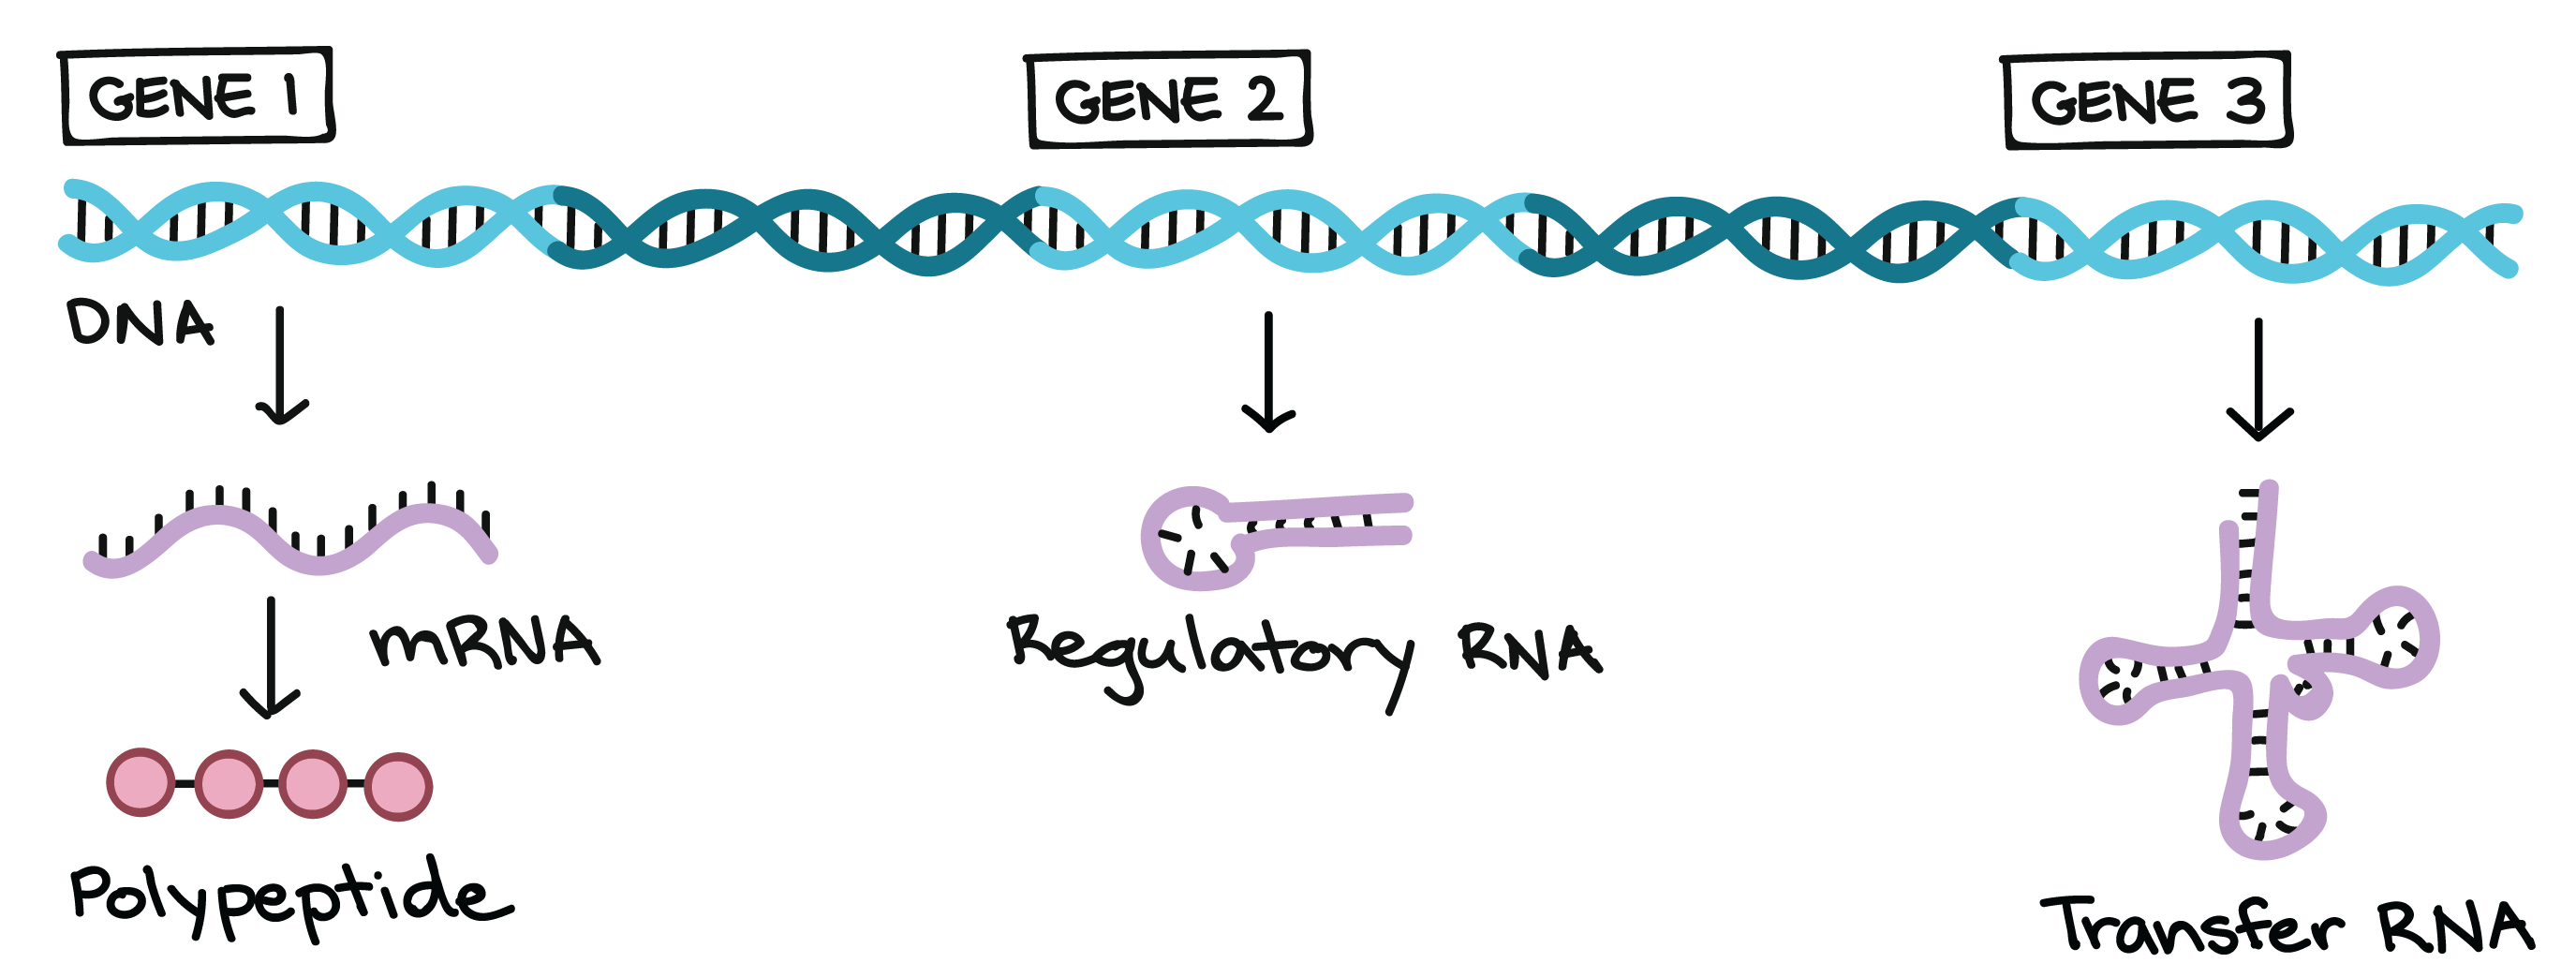 Worksheet On Dna Rna And Protein Synthesis Answer Key